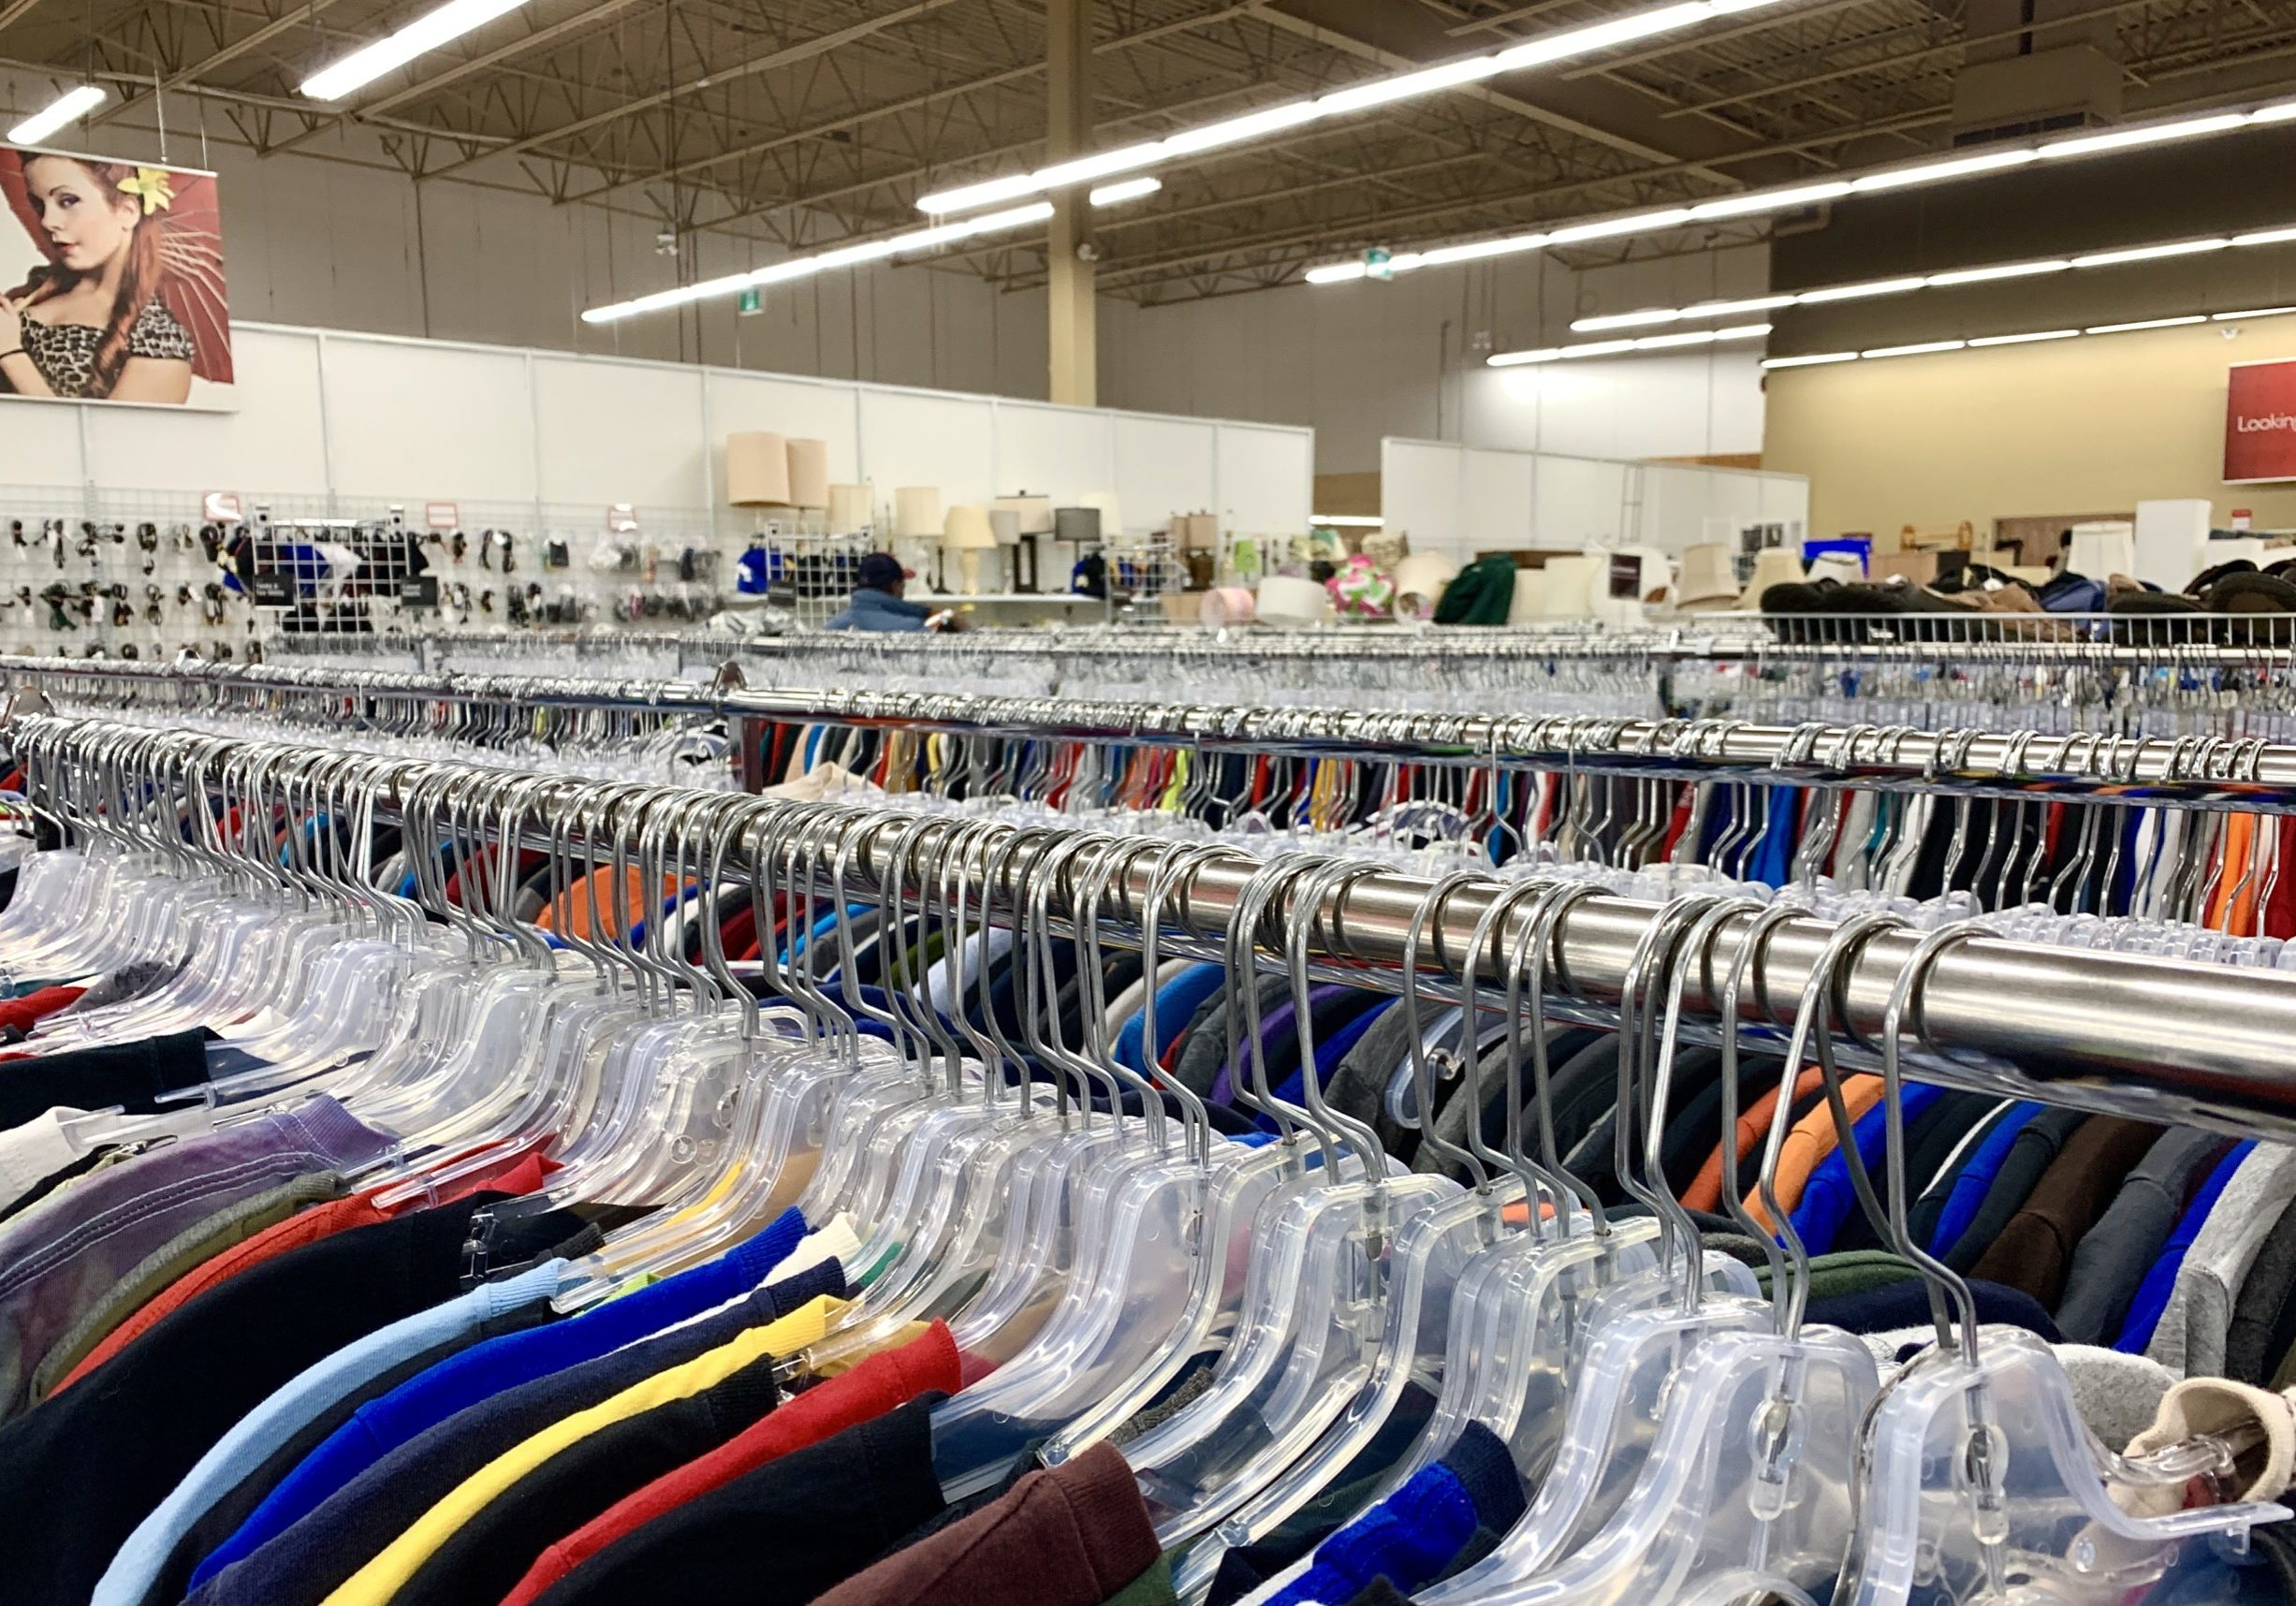 In this image: Racks of clothes at a thrift store.